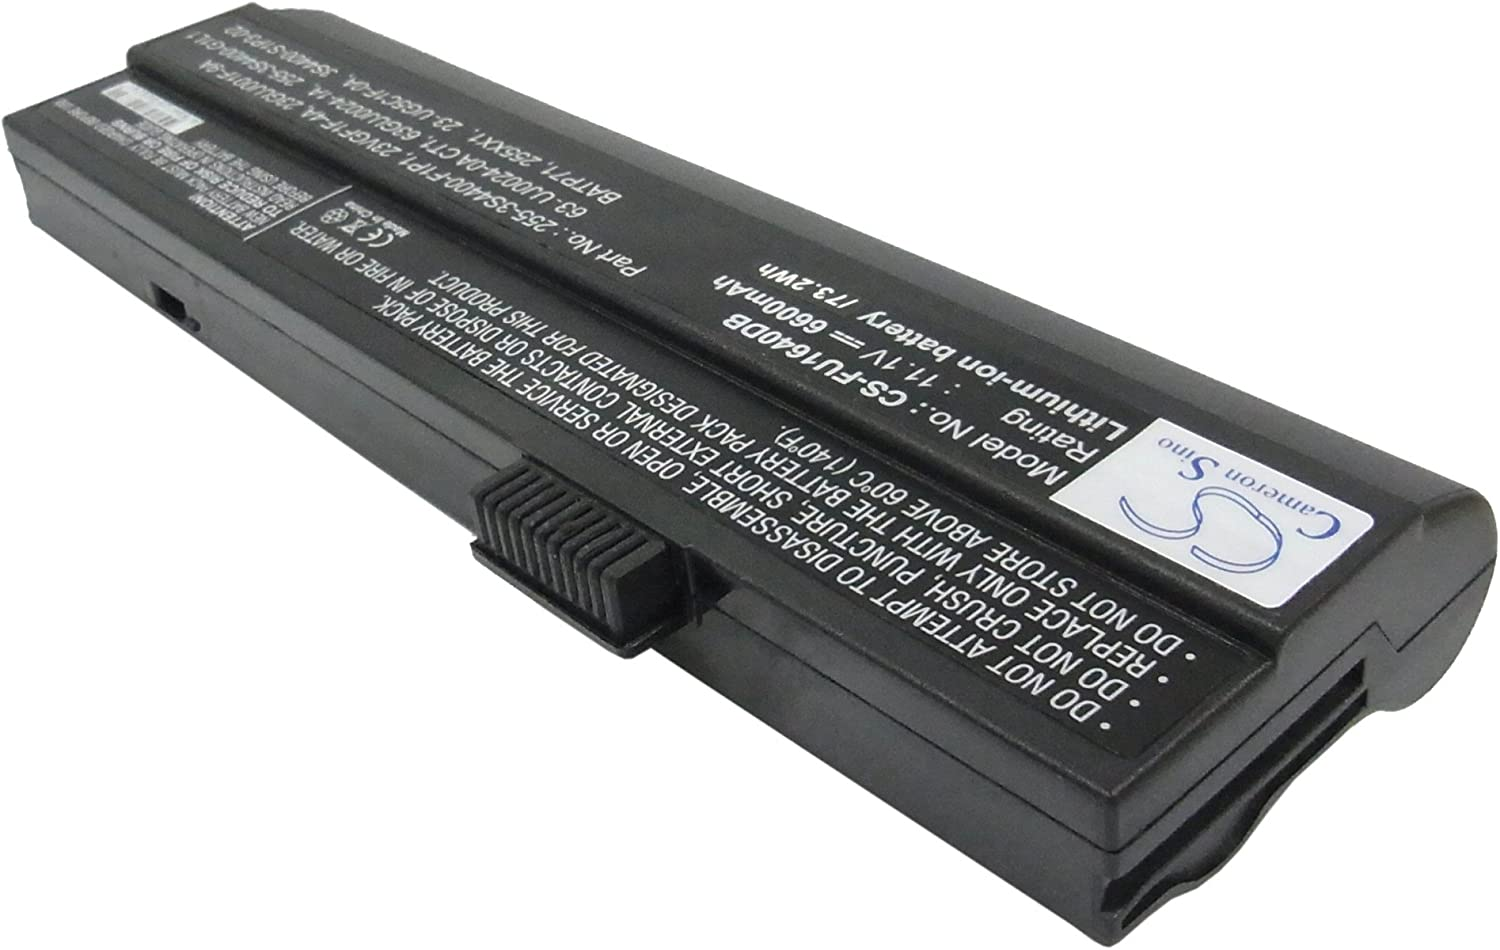 GAXI Battery for Fujitsu Notebook Laptop Replacement for P/N 23GUJ001F-3A, 23-GUJ001F-9A, 23GUJ001F-9A